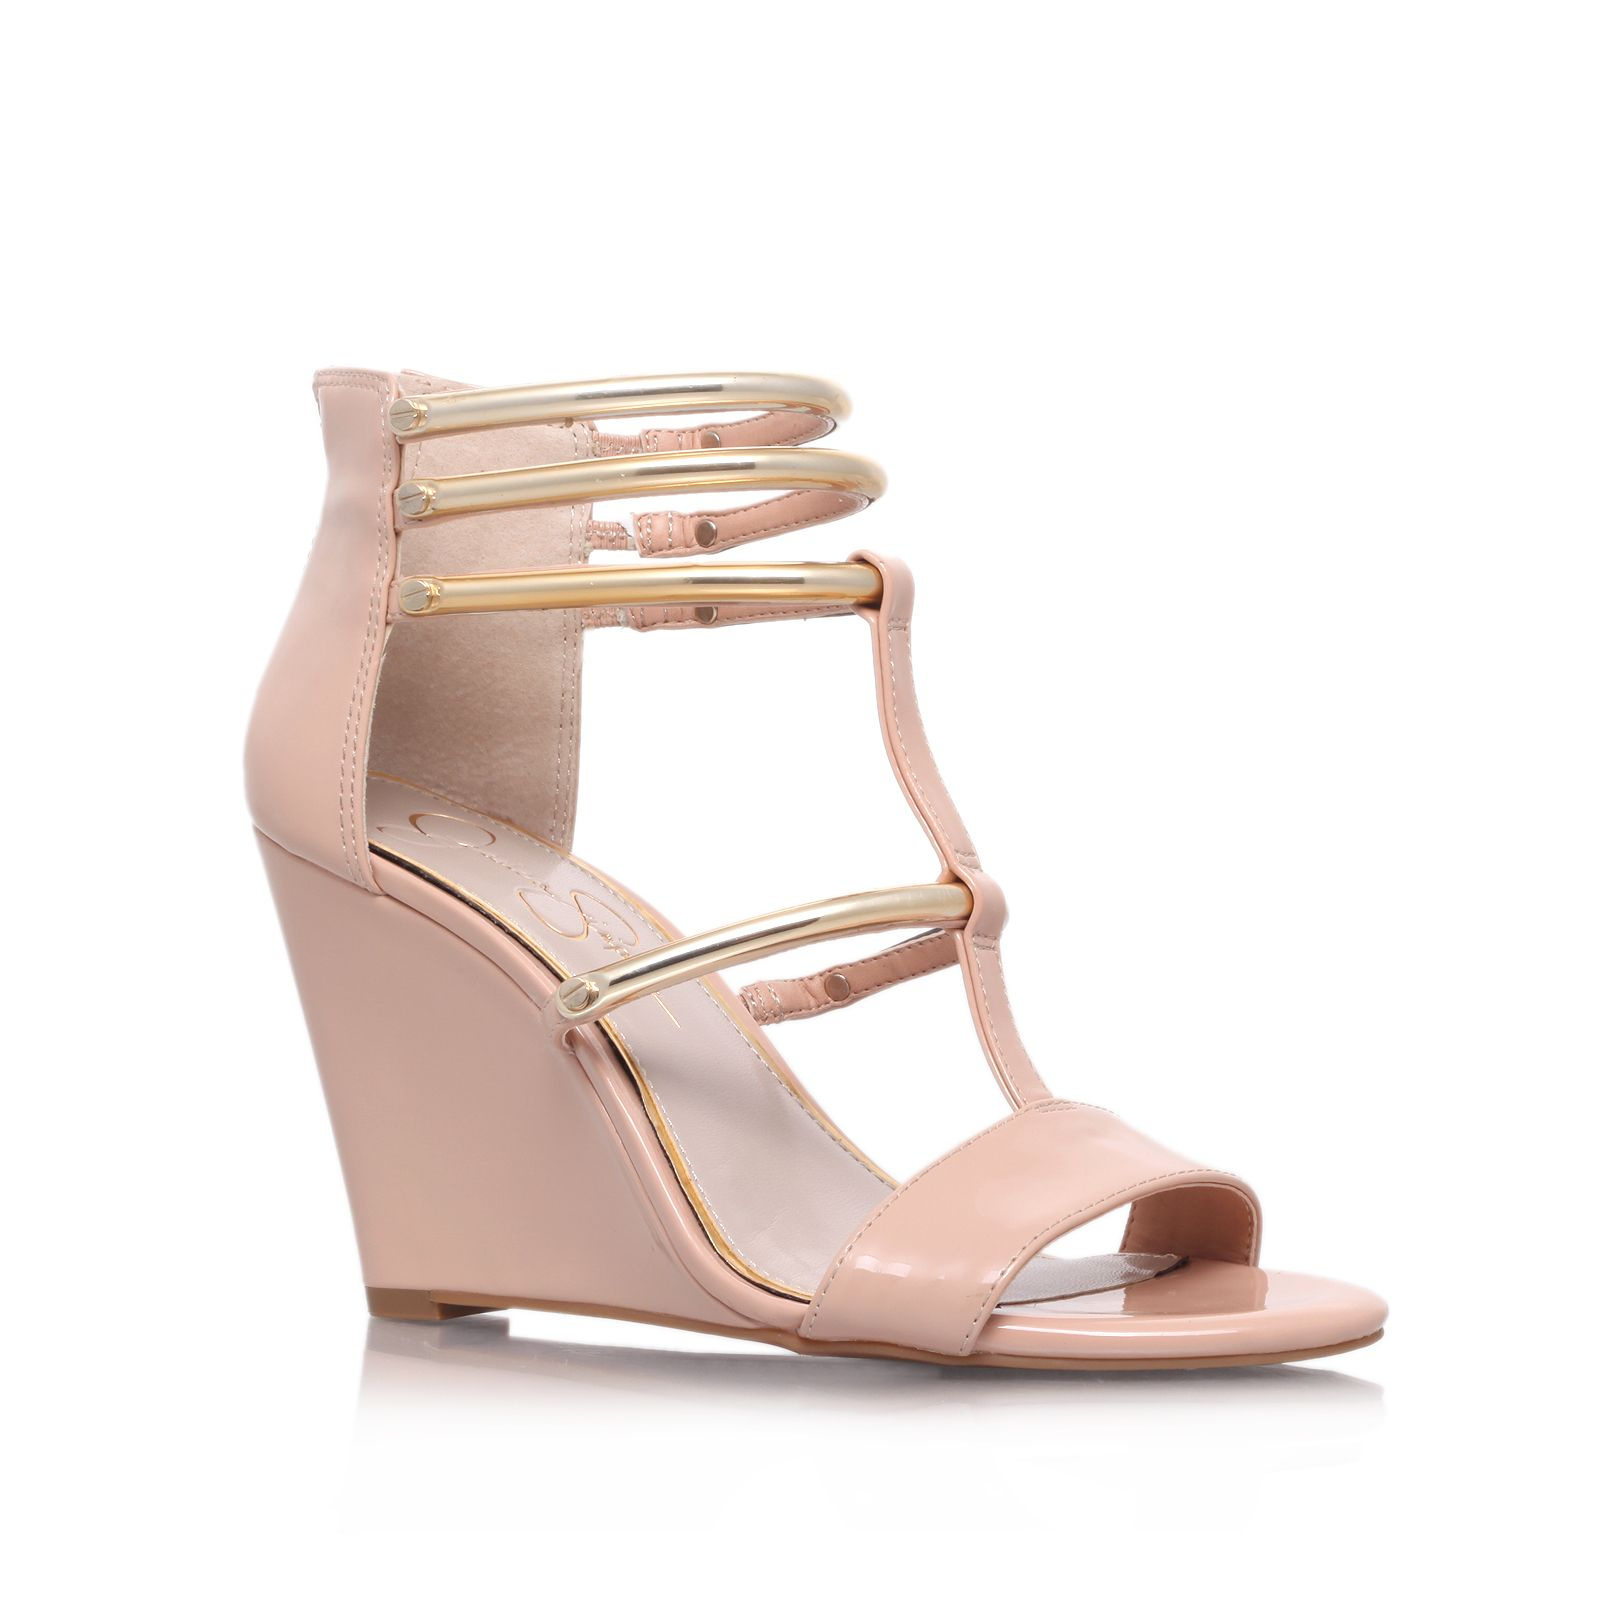 Marnea mid heel wedge sandals